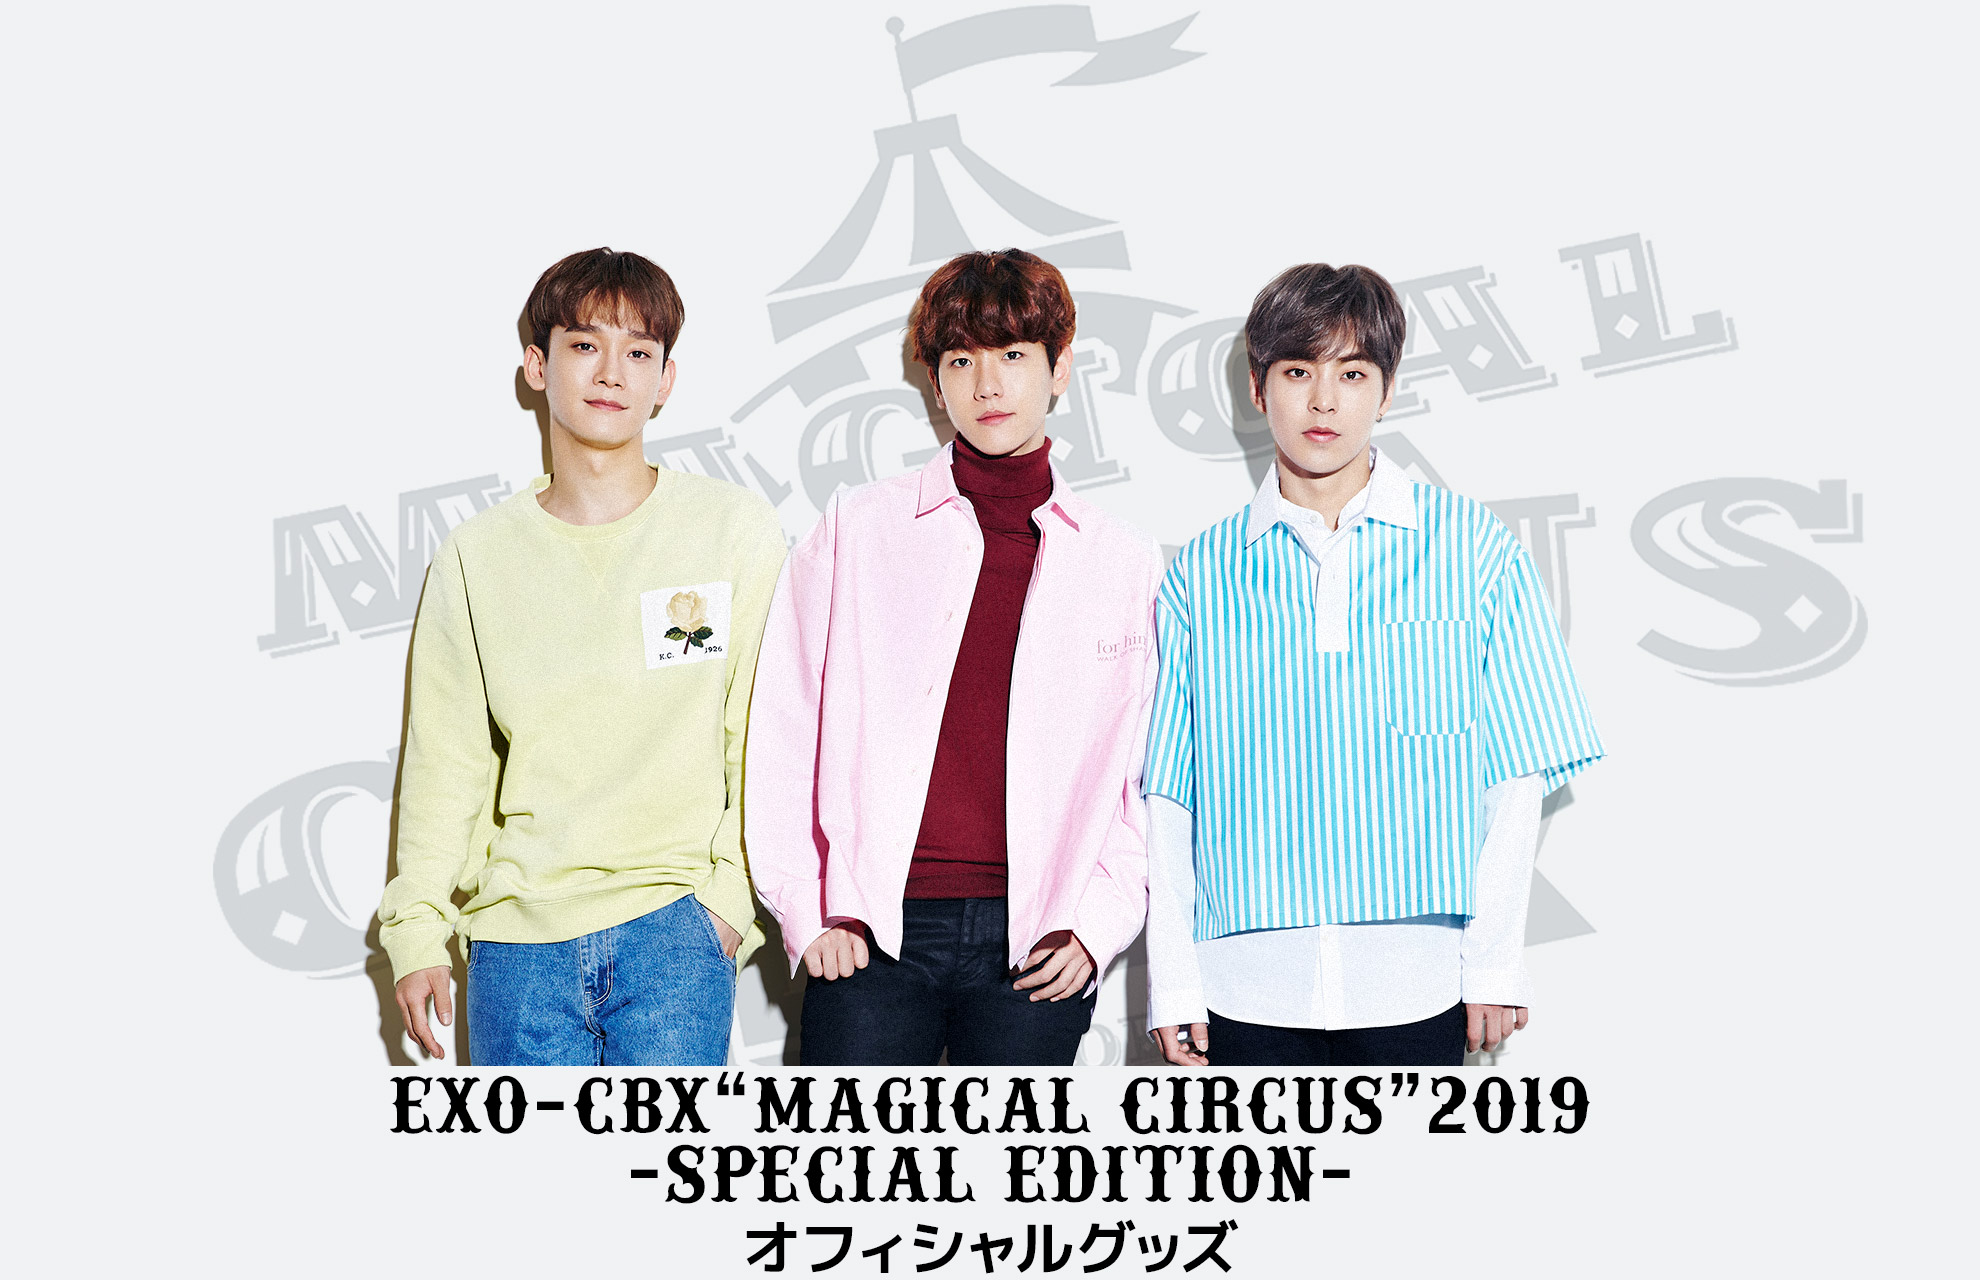 "EXO-CBX""MAGICAL CIRCUS""2019-Special Edition- オフィシャルグッズ"